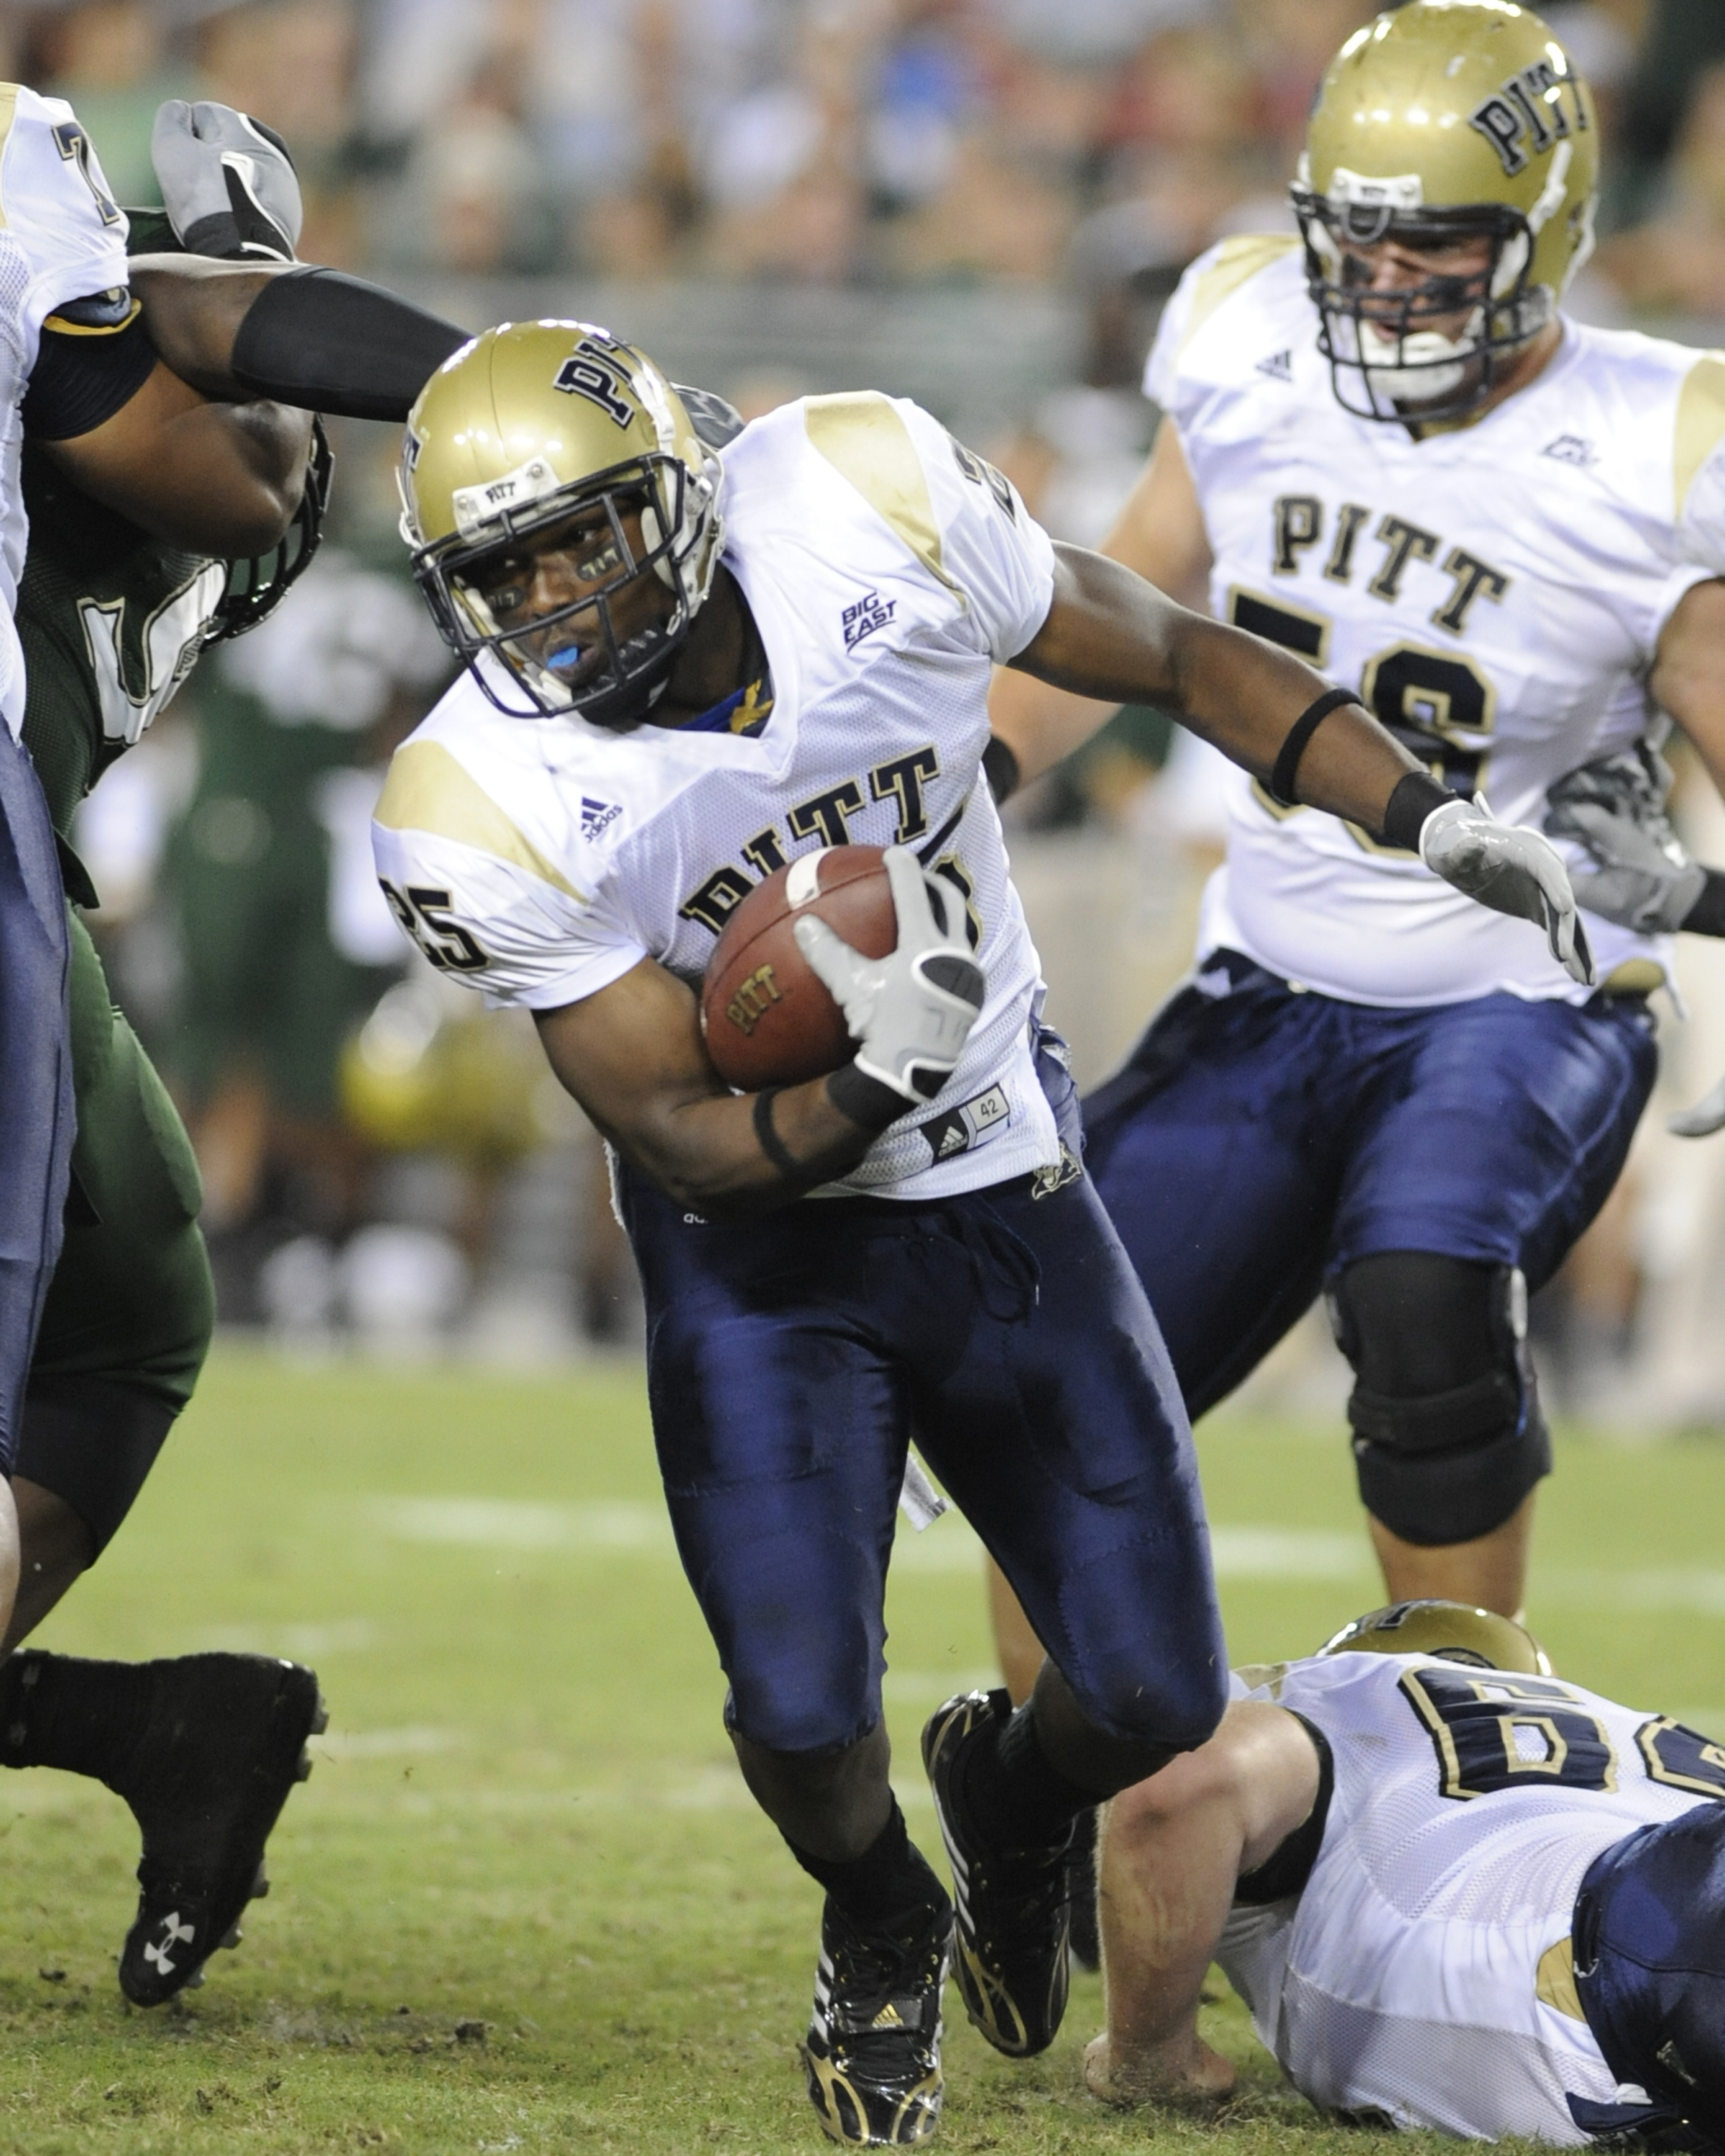 TAMPA, FL - OCTOBER 2: Tailback LeSean McCoy #25 of the Pittsburgh Panthers rushes upfield against the University of South Florida Bulls at Raymond James Stadium on October 2, 2008 in Tampa, Florida.  (Photo by Al Messerschmidt/Getty Images)